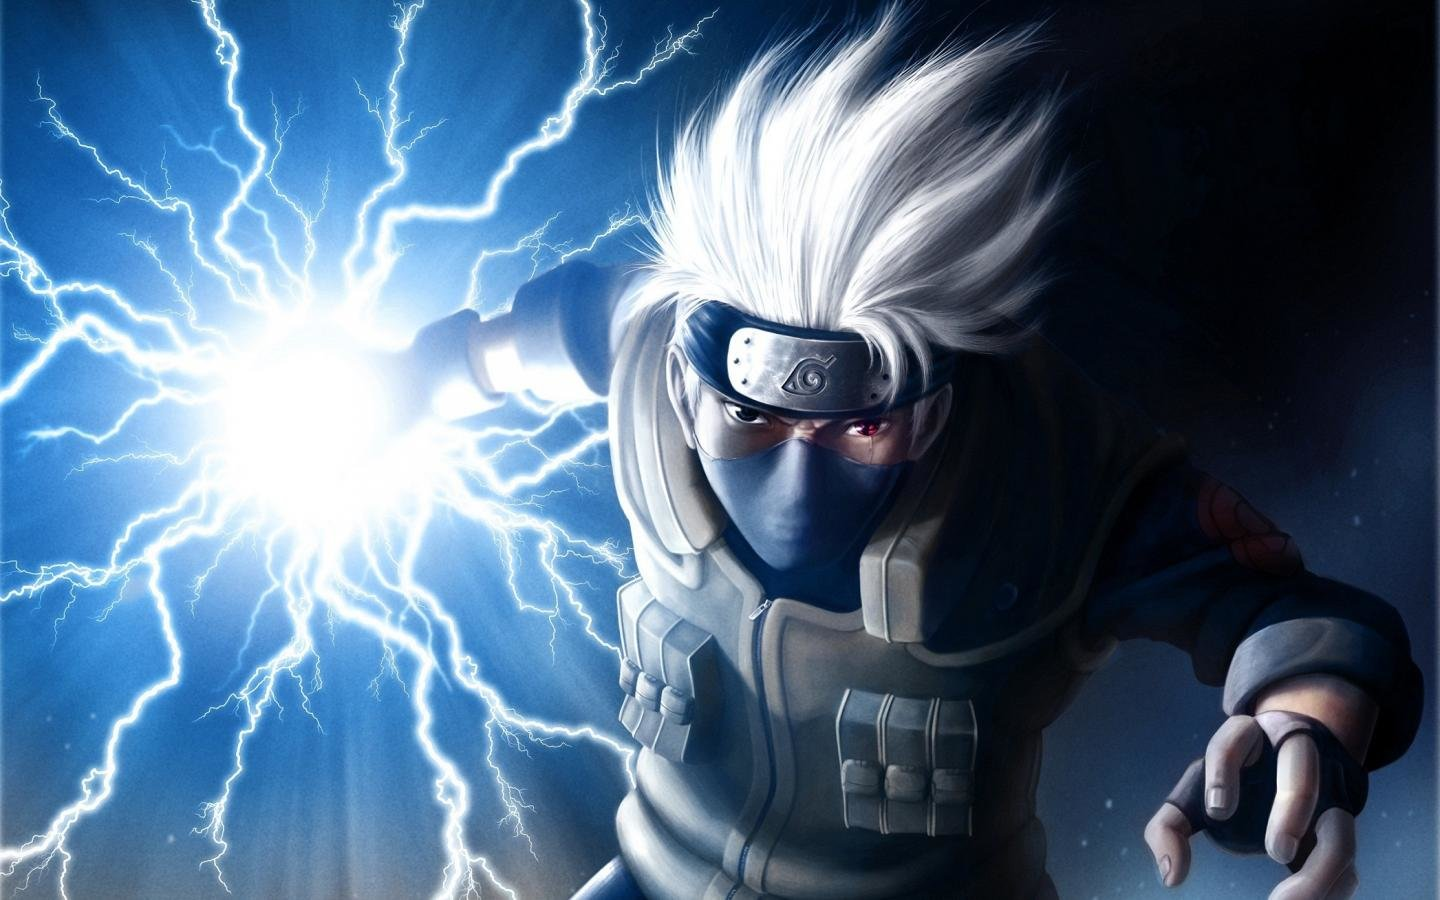 Download hd 1440x900 Kakashi Hatake PC background ID:396692 for free